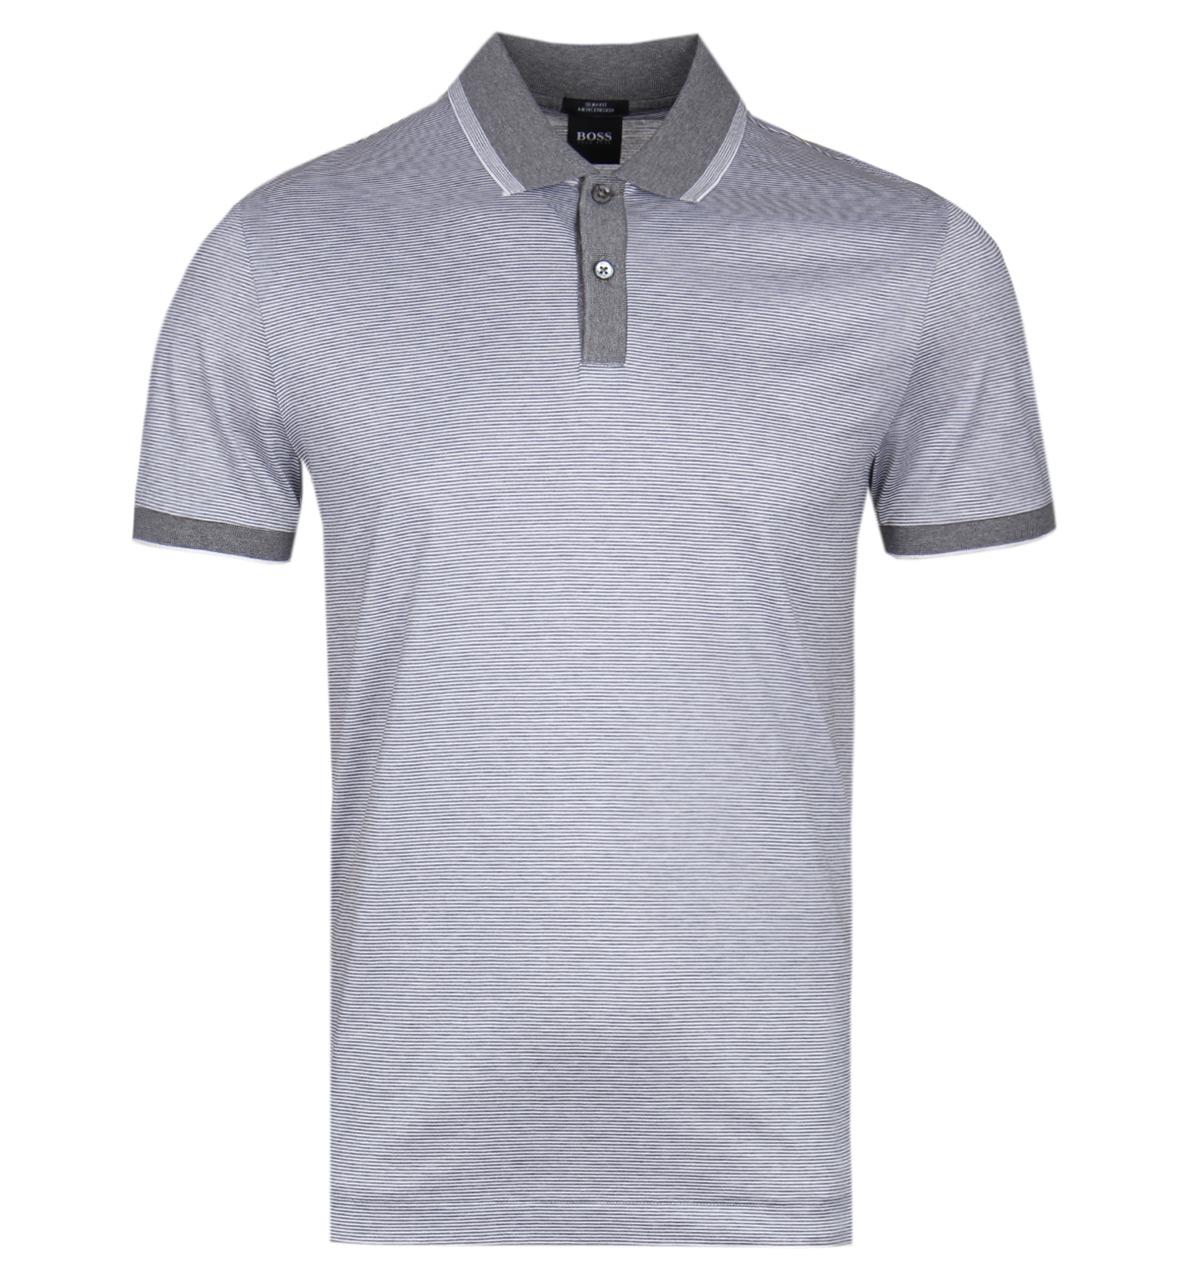 5abec34b3 Boss By Hugo Boss Phillipson32 Slim Fit Grey Polo Shirt in Gray for ...